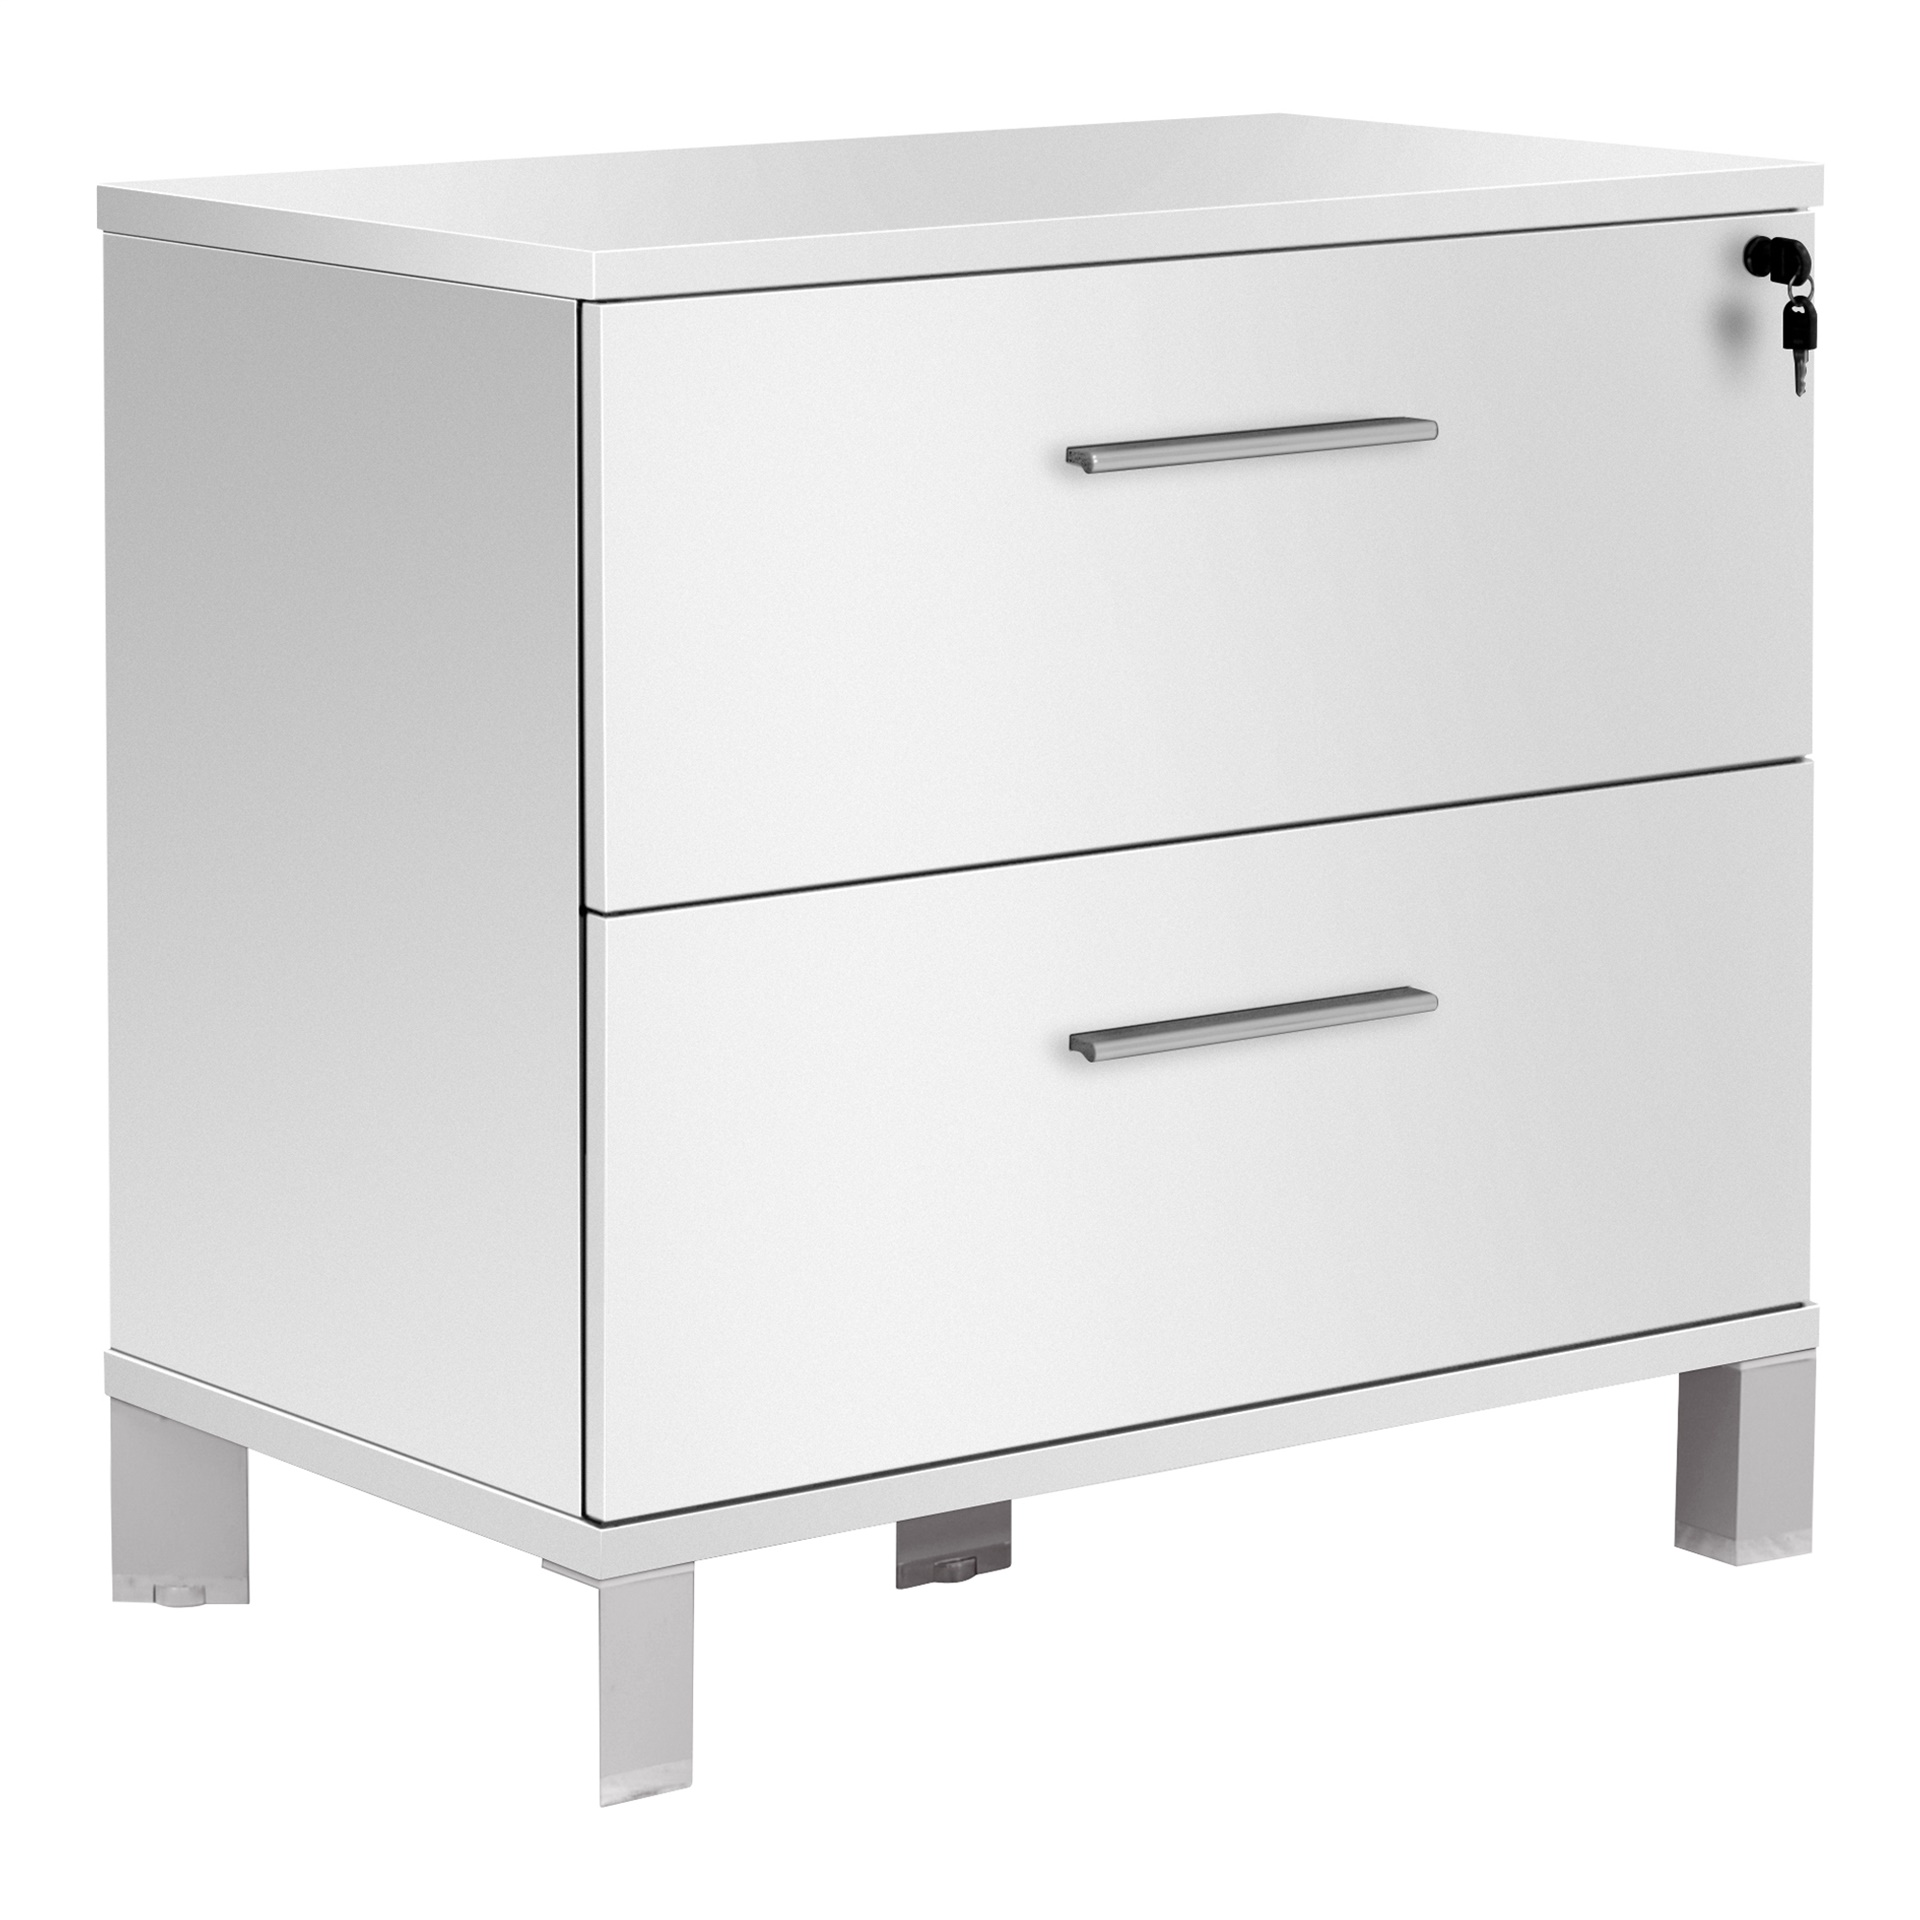 500 Series Lateral File Cabinet